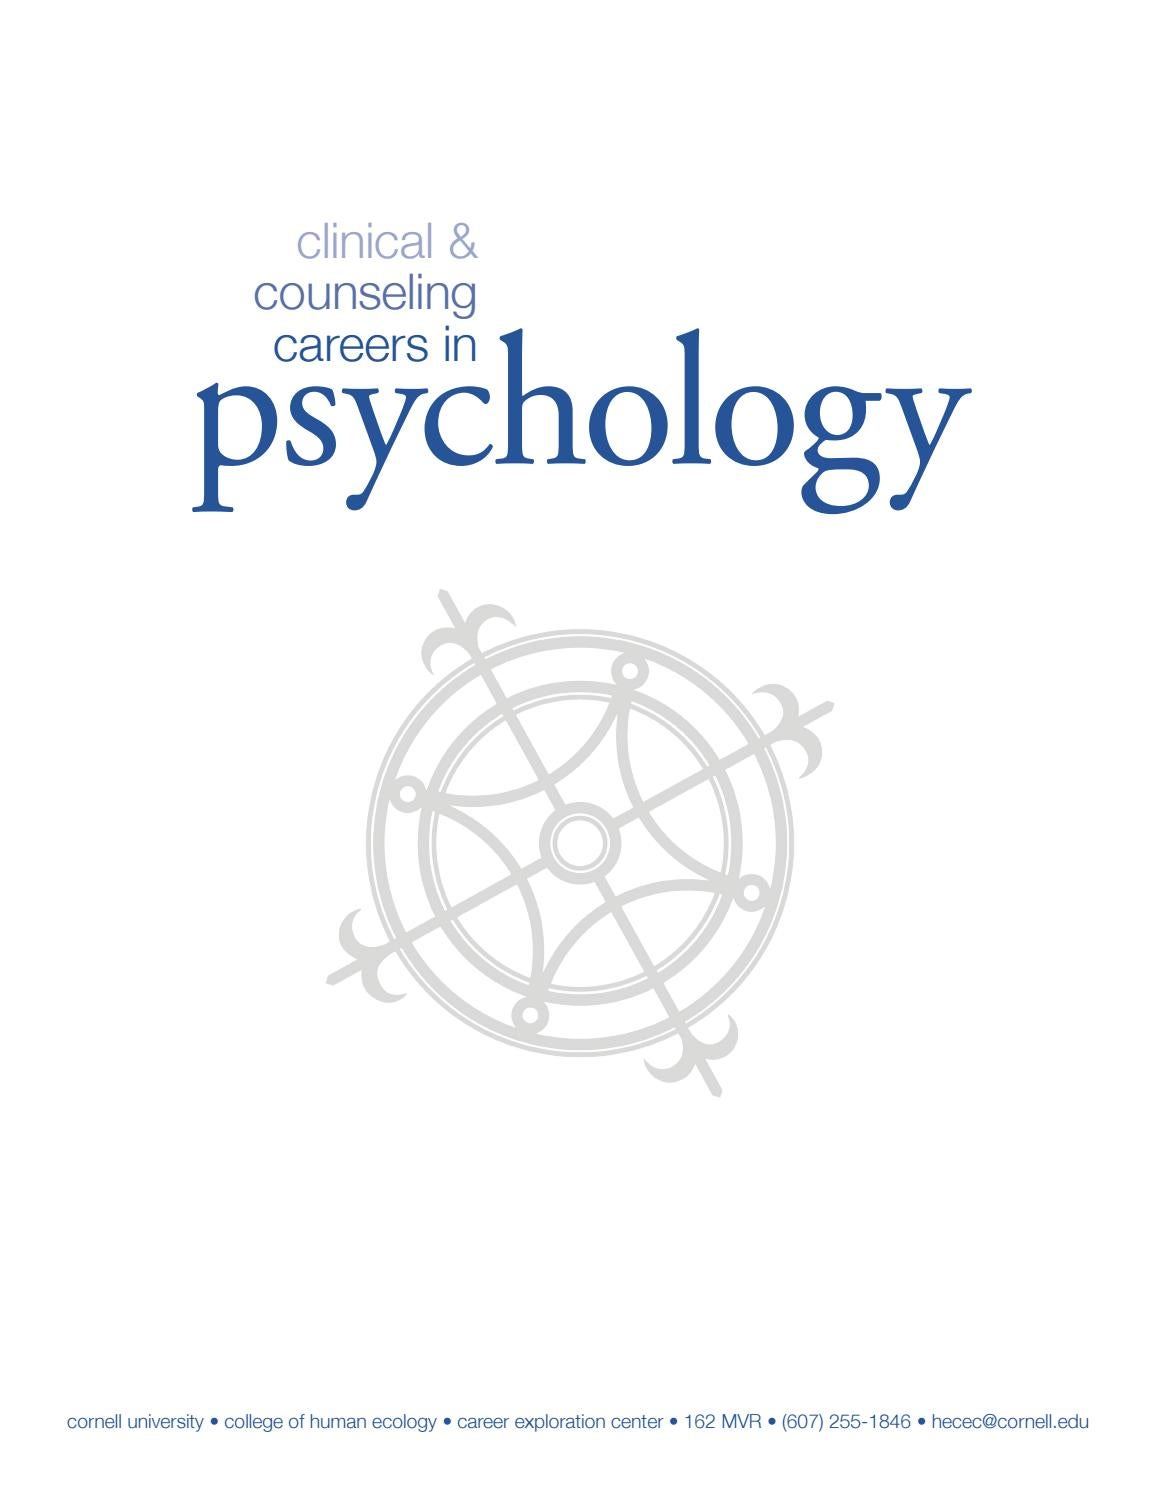 Clinical & counseling careers in psychology by CHE Career Exploration  Center - issuu